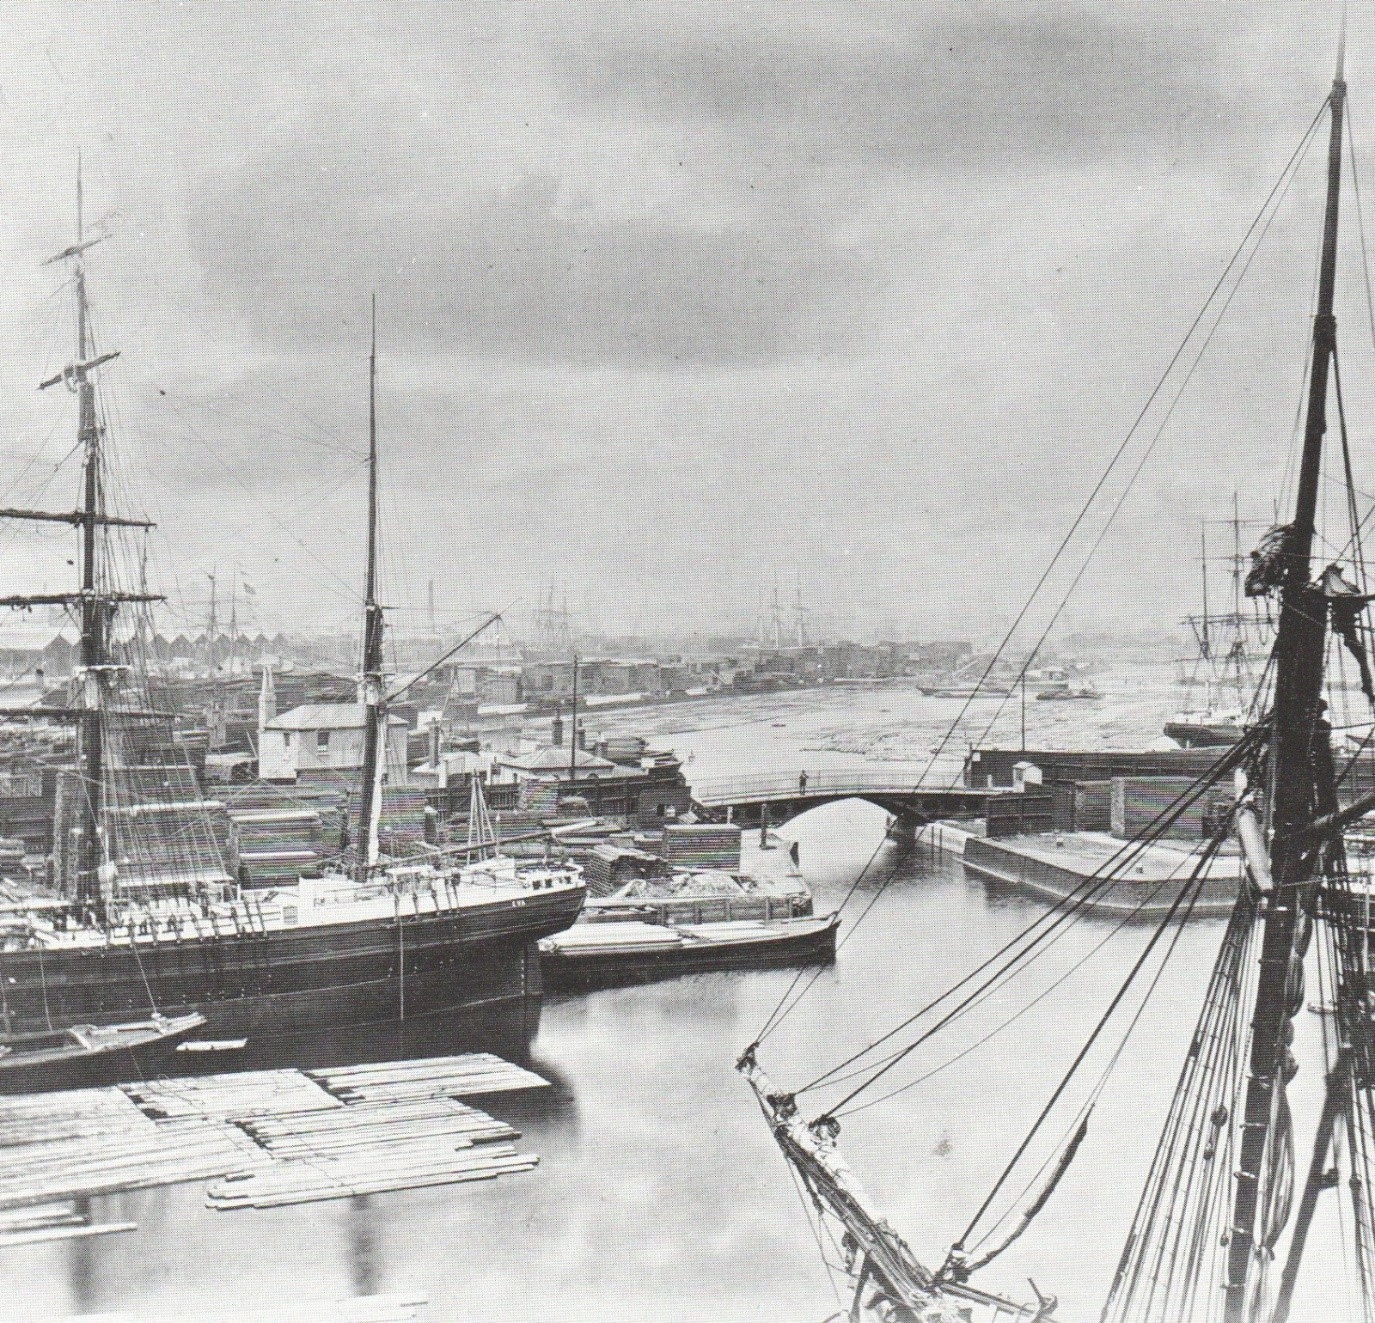 Norway Dock, with Lady Dock on the other side of the bridge, both floating timber. 1876. X.jpg